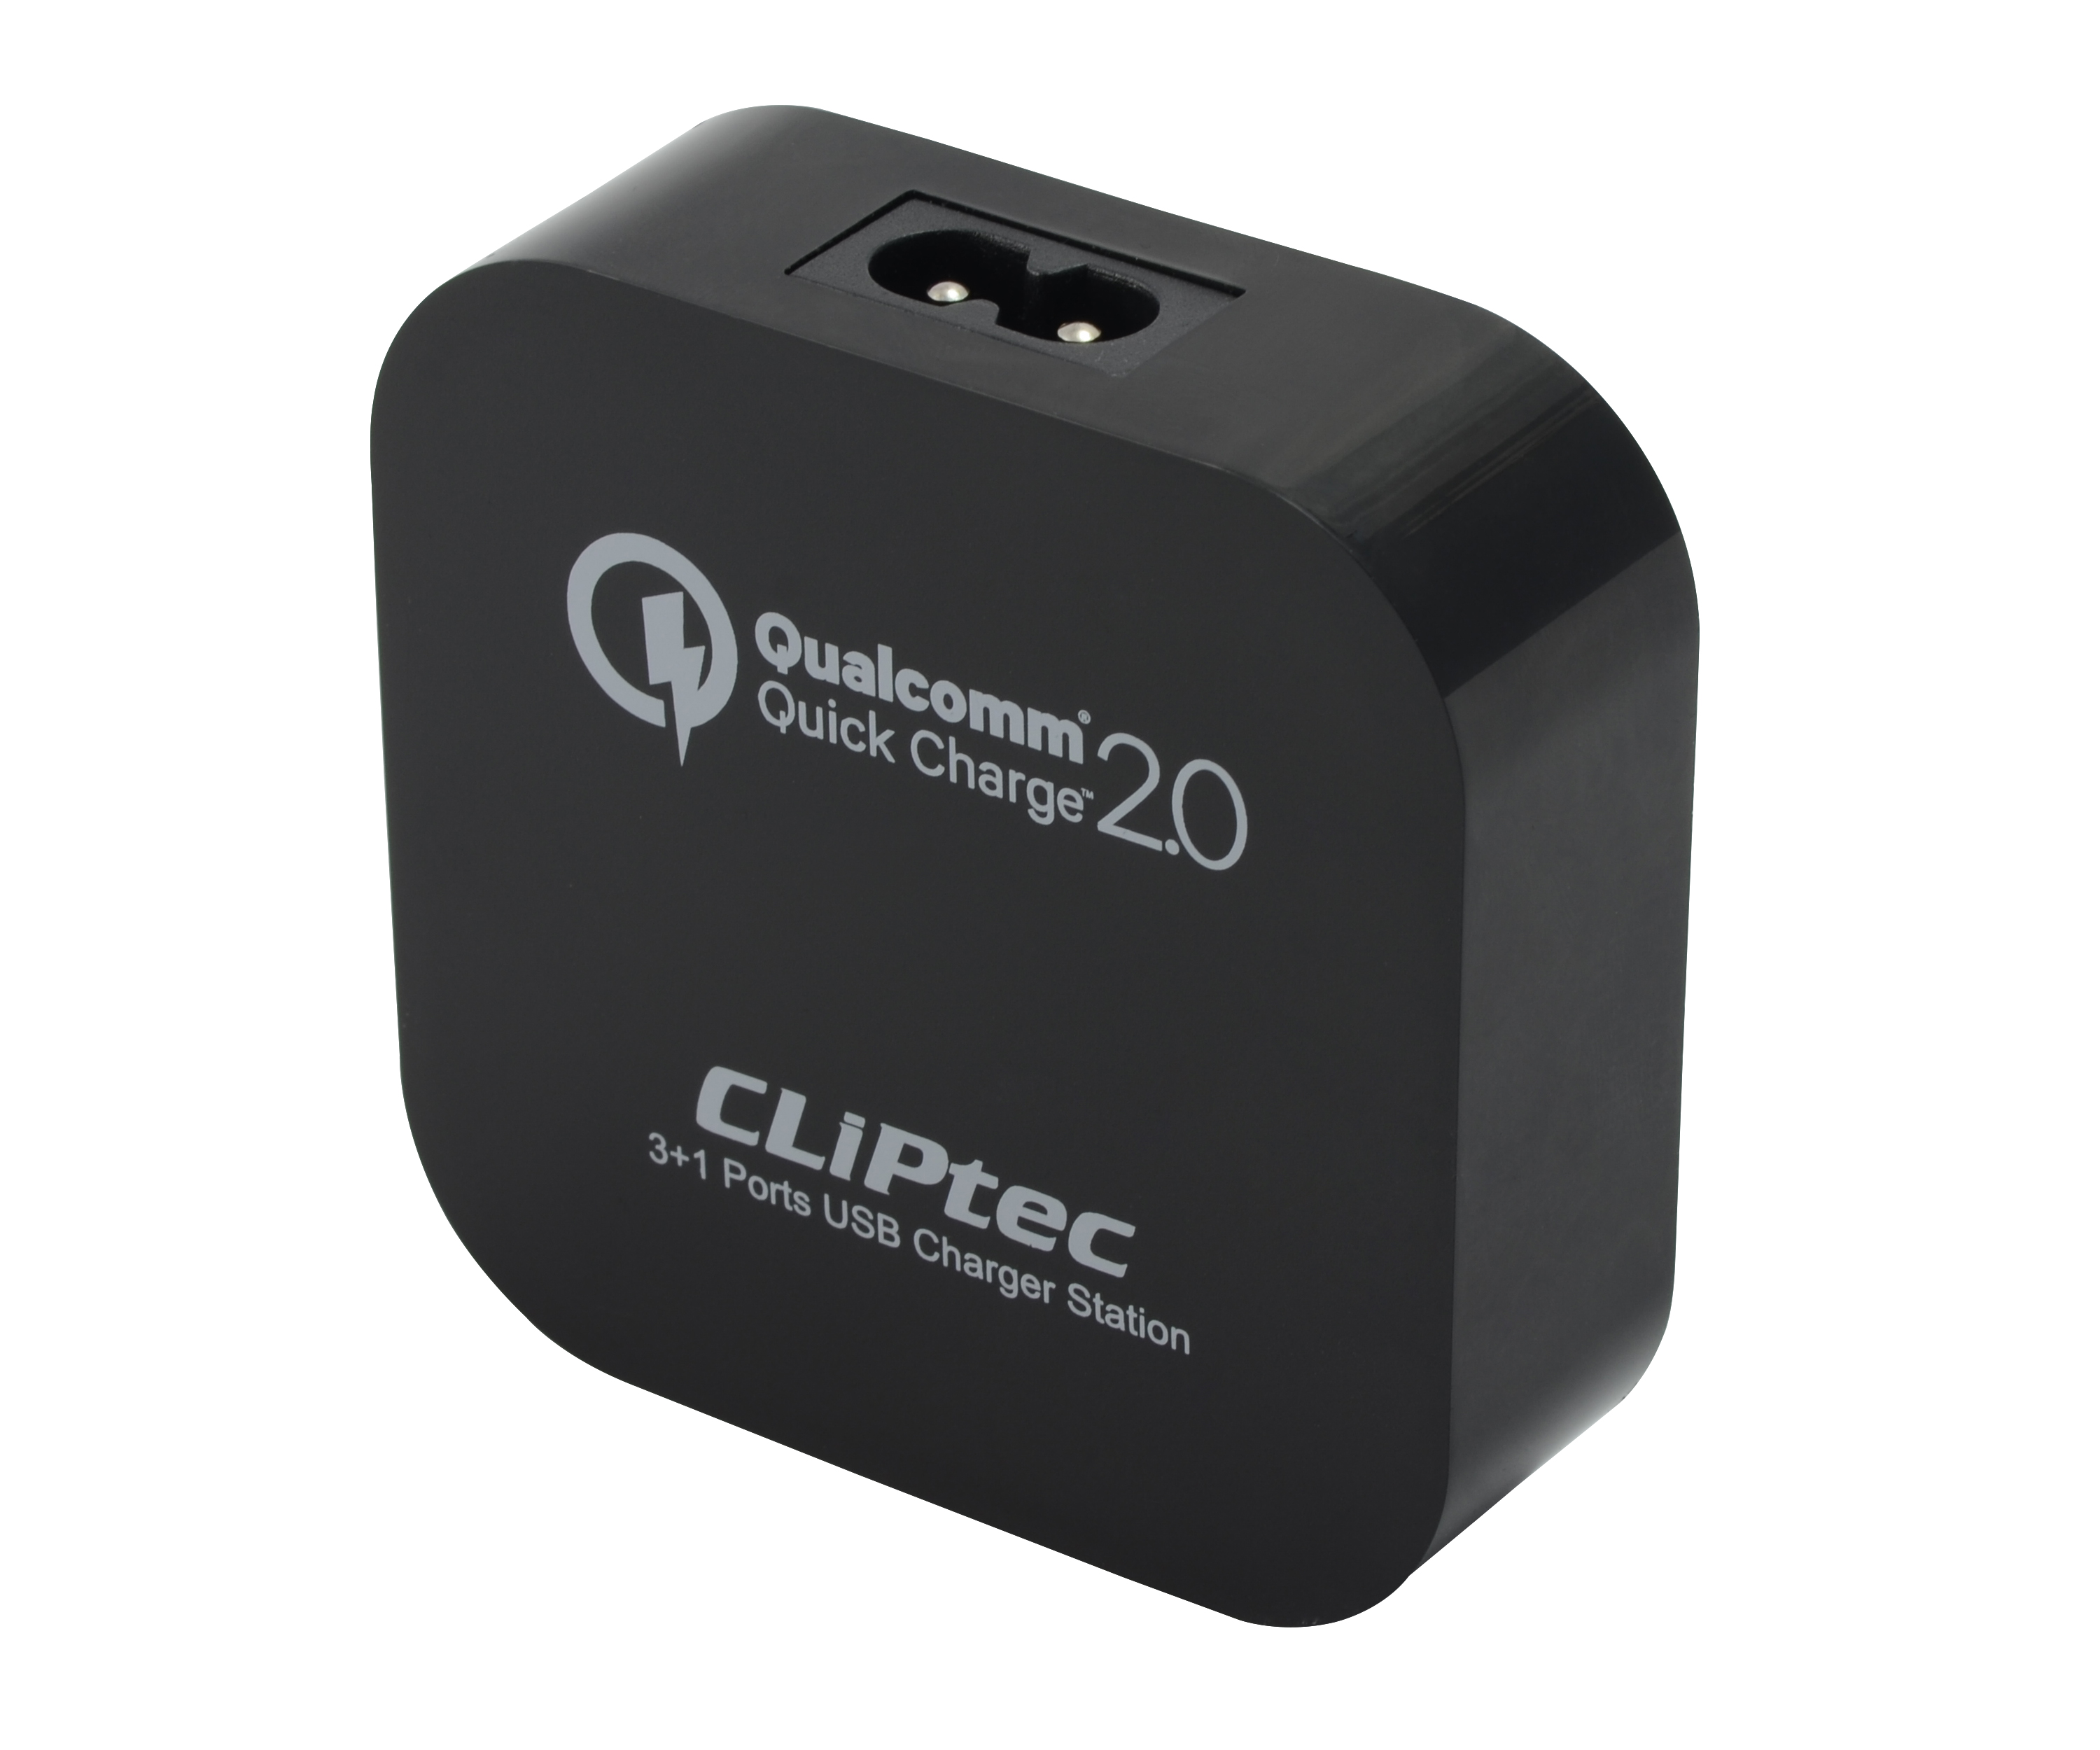 CLiPtec Turbo 3+1 Ports Quick Charge 2.0USB Charger Station GZU503